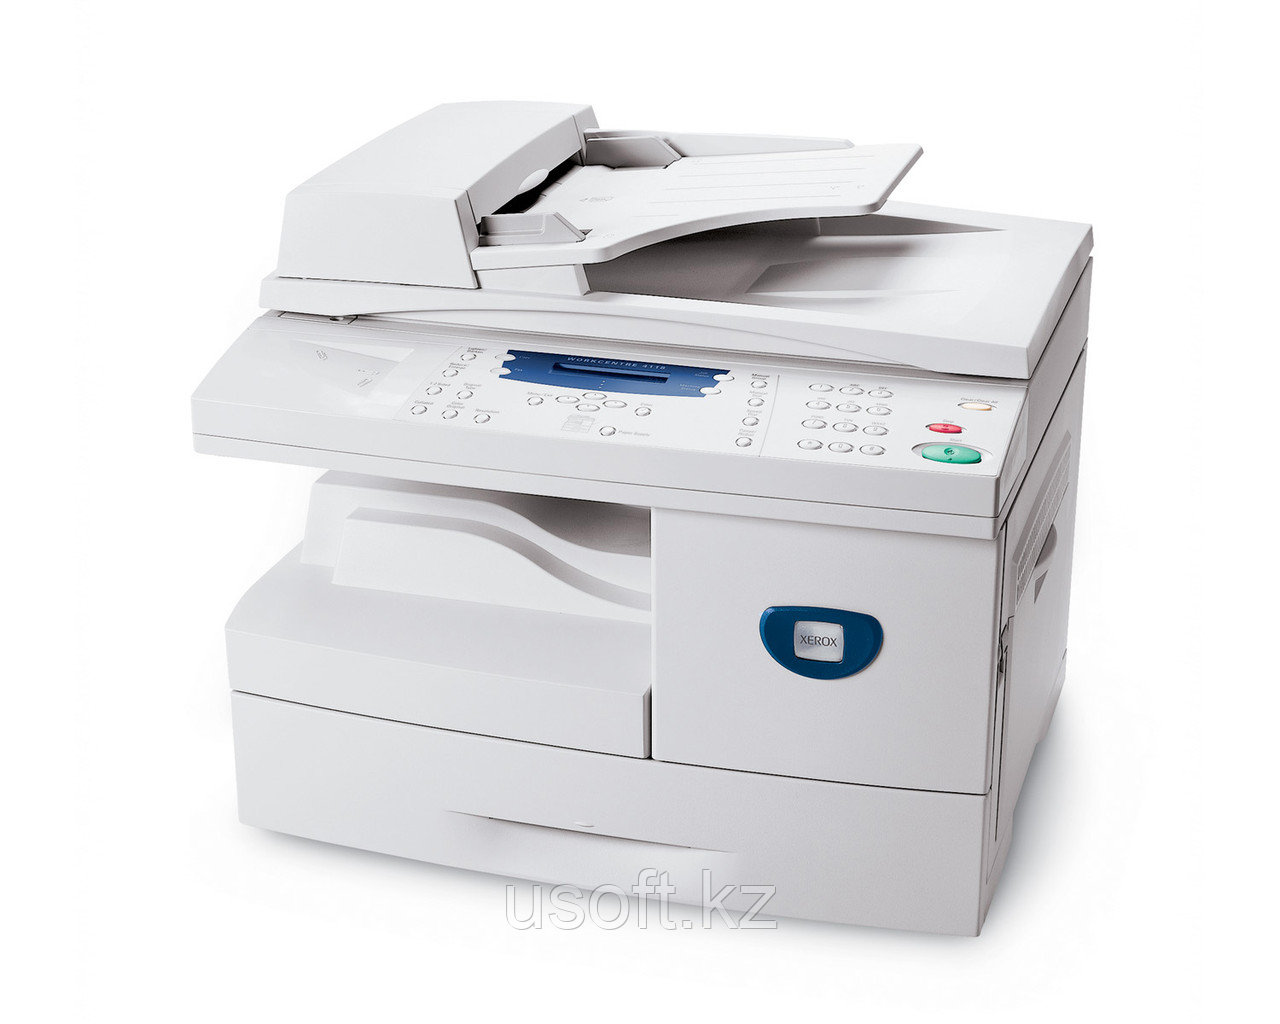 МФУ XEROX WorkCentre 4118X формат А4(4118VX)